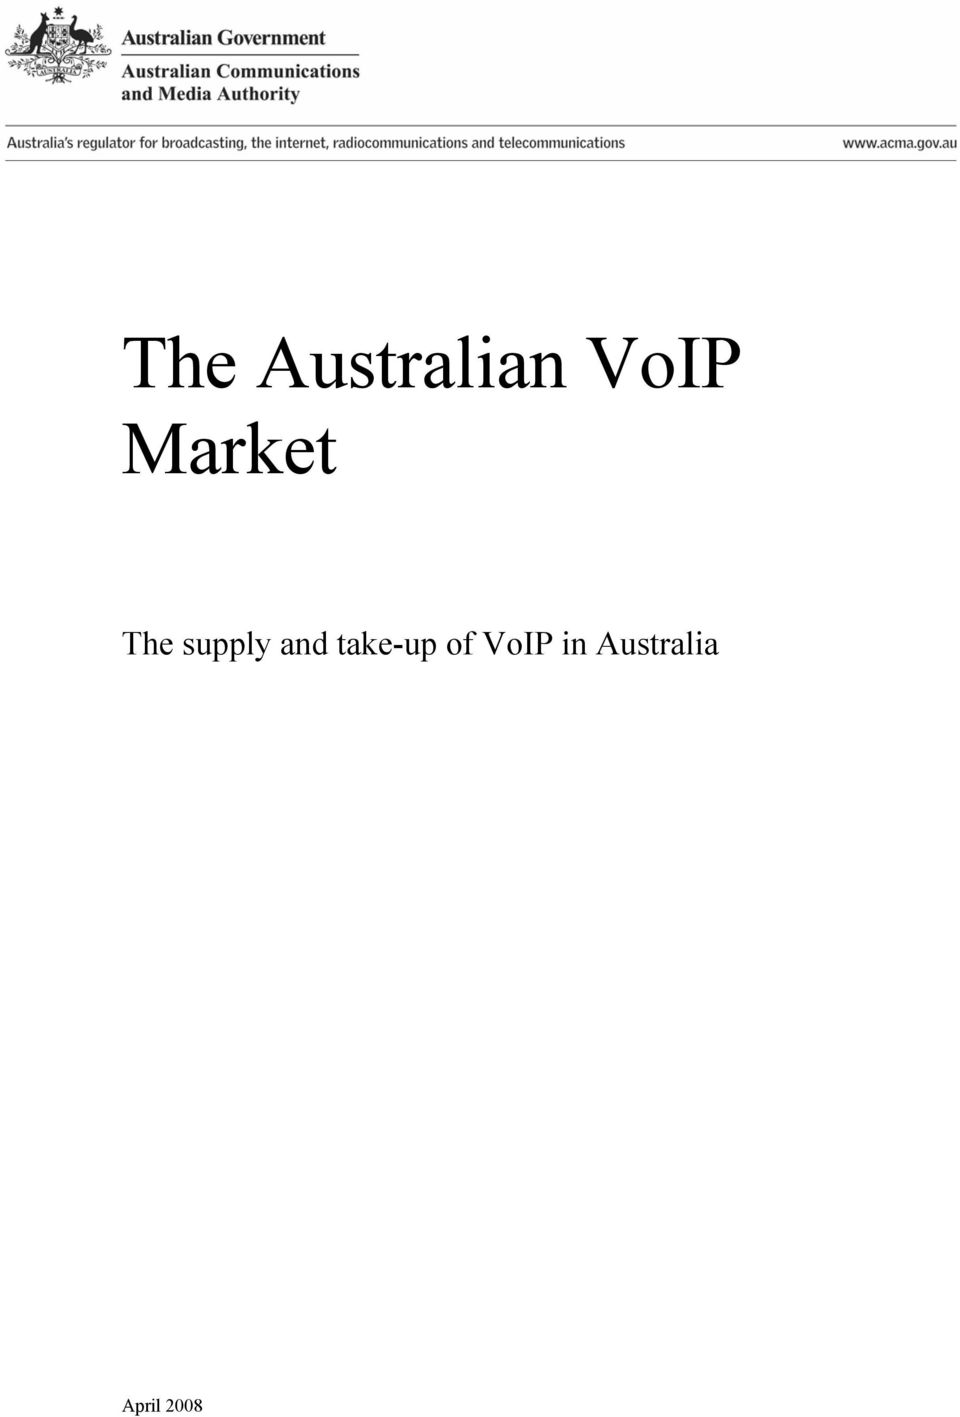 and take-up of VoIP